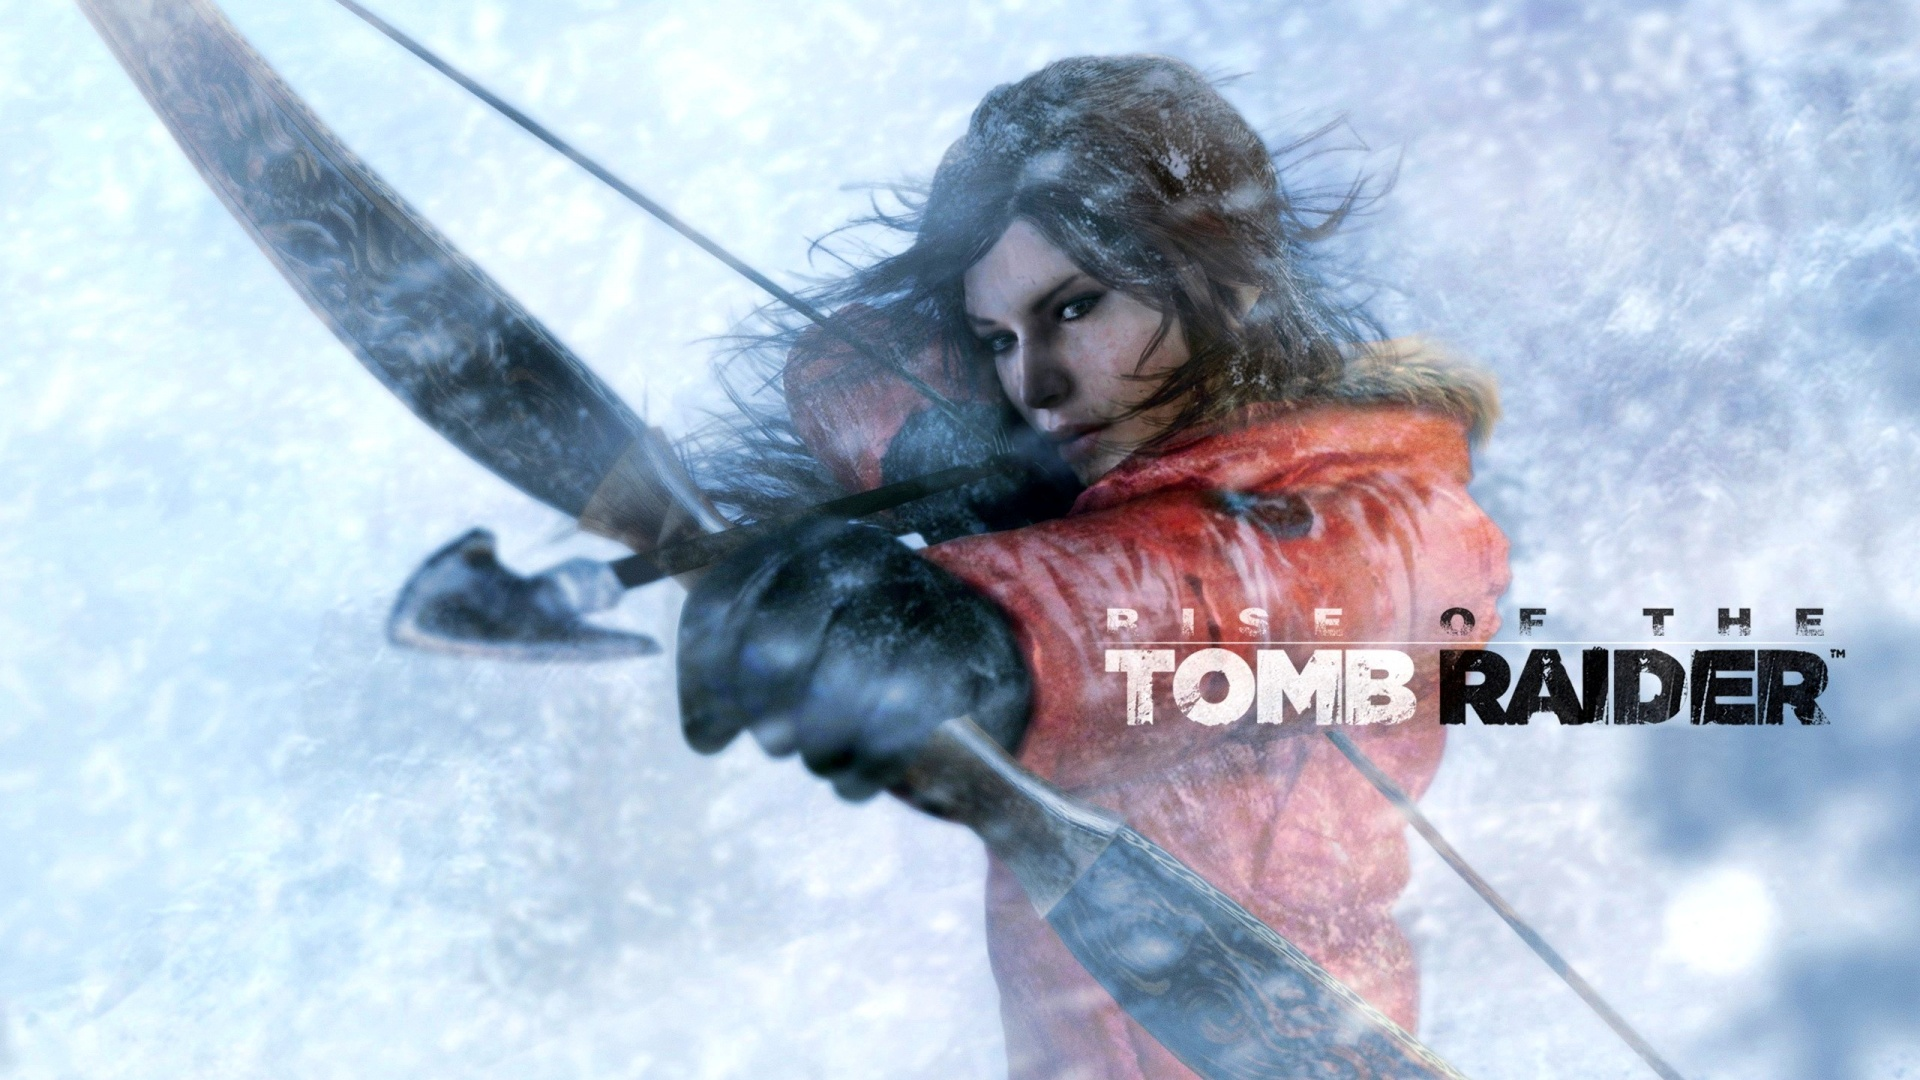 Rise Of The Tomb Raider 2015 Wallpapers   1920x1080   599716 1920x1080